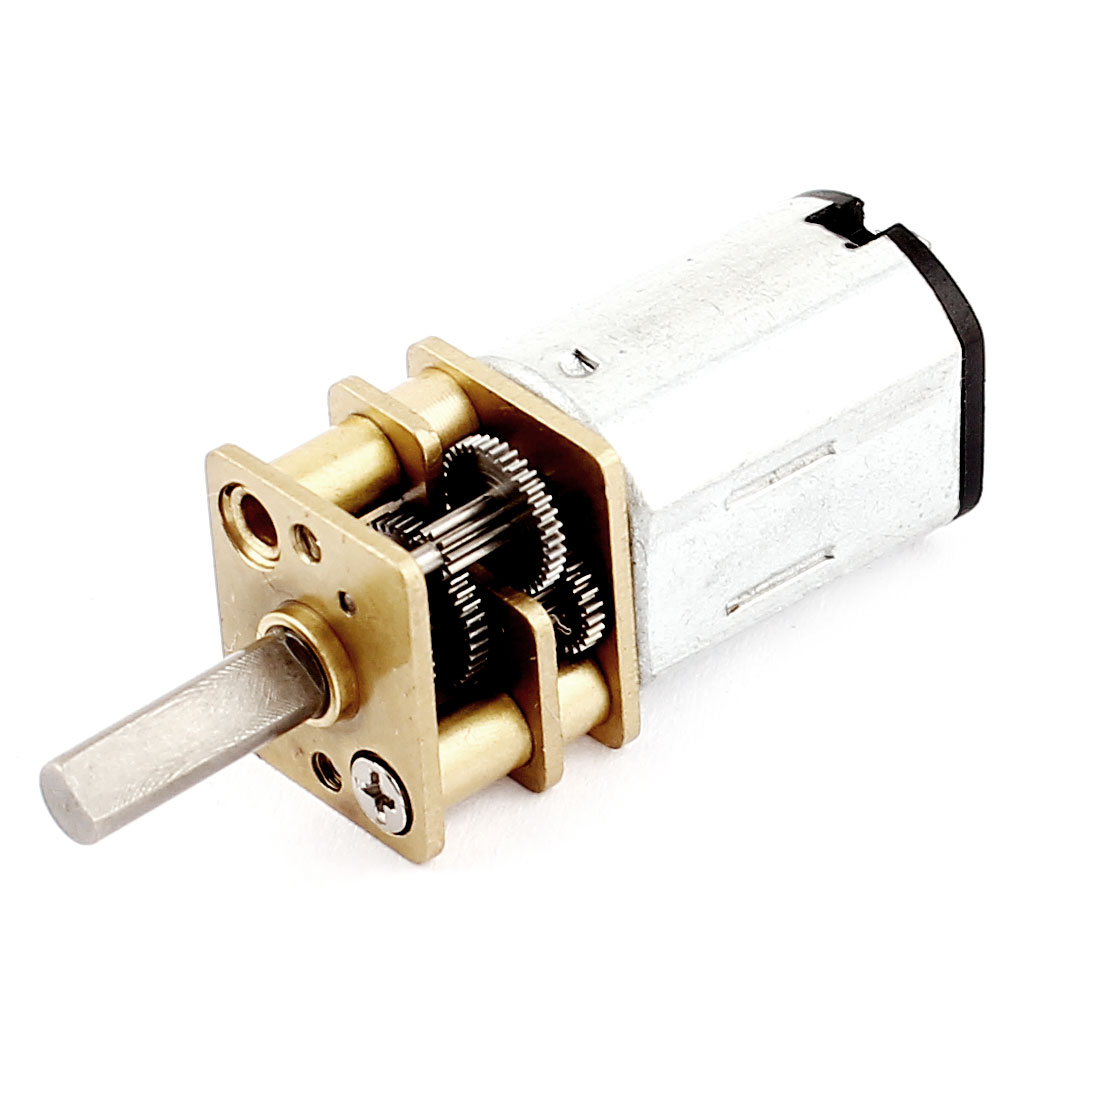 M20 12V 80RPM 5Kg.cm Electric Speed Reducing DC Geared Motor for DIY Toy